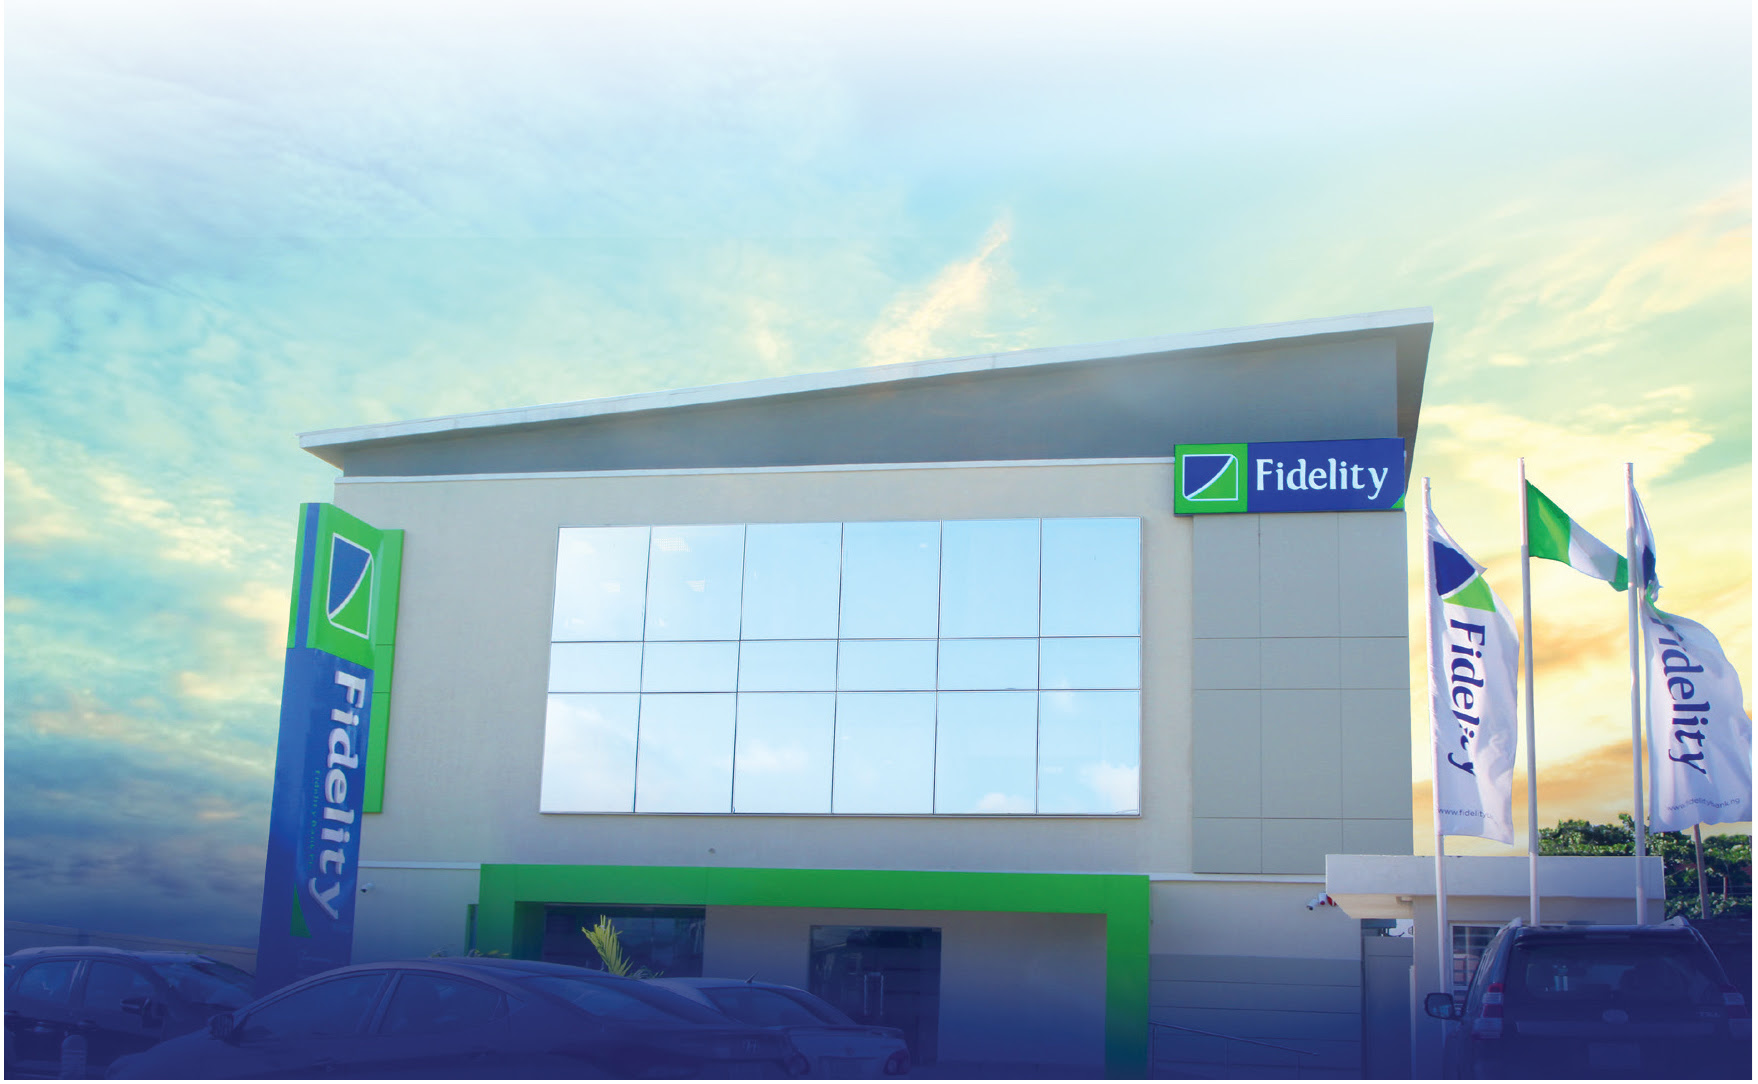 Fidelity Bank staff tests positive for COVID-19